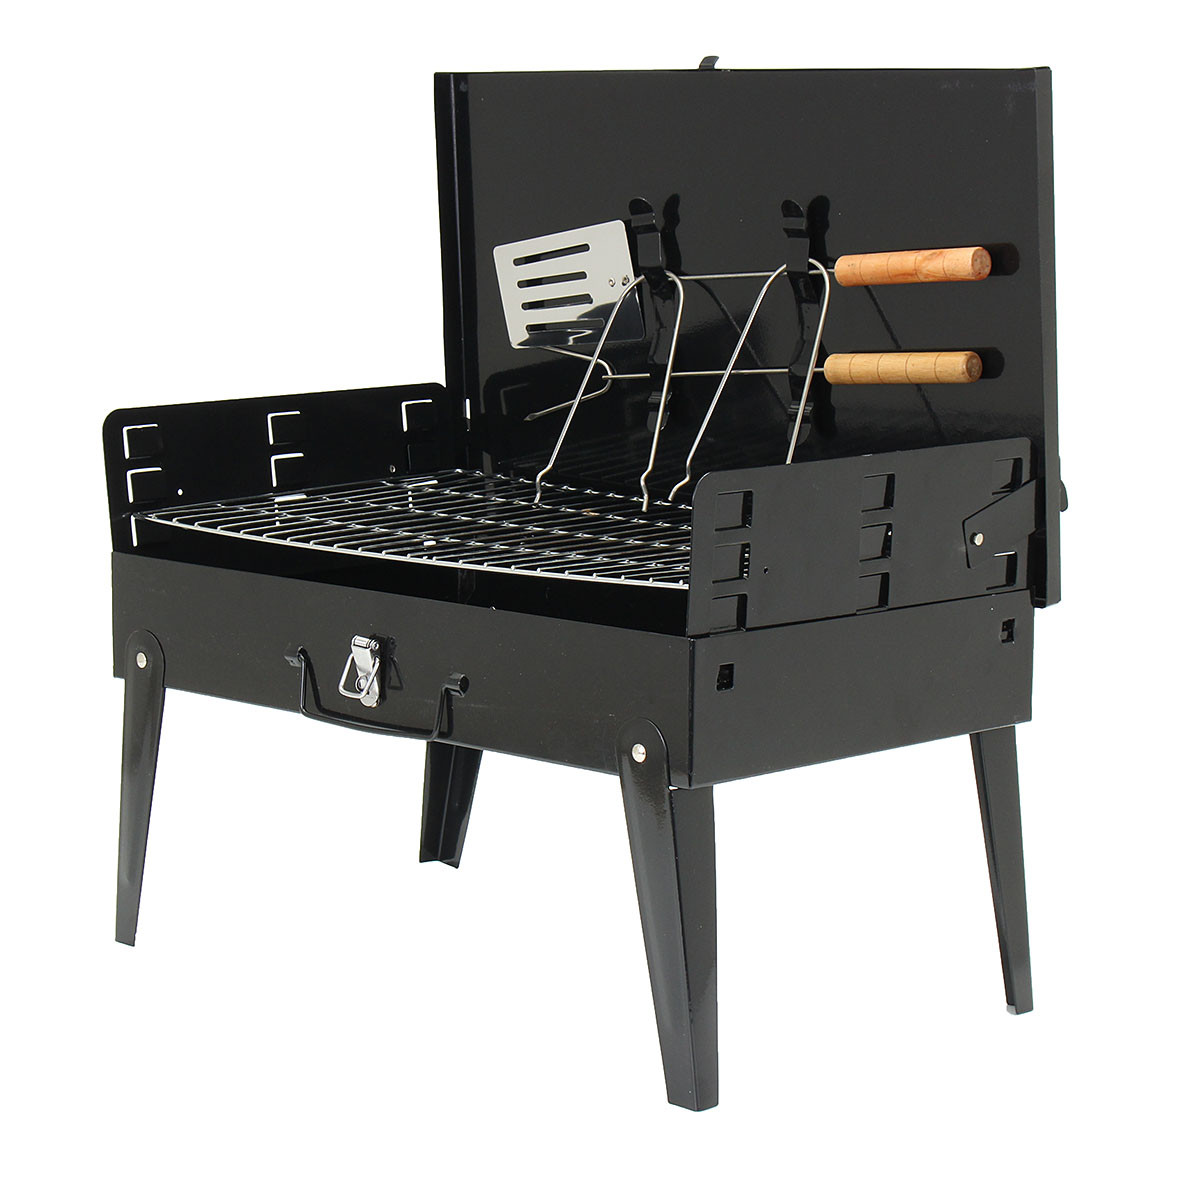 "18"" Portable Charcoal Grill BBQ Backyard Patio Outdoor Cooker Tabletop Camping Barbecue"